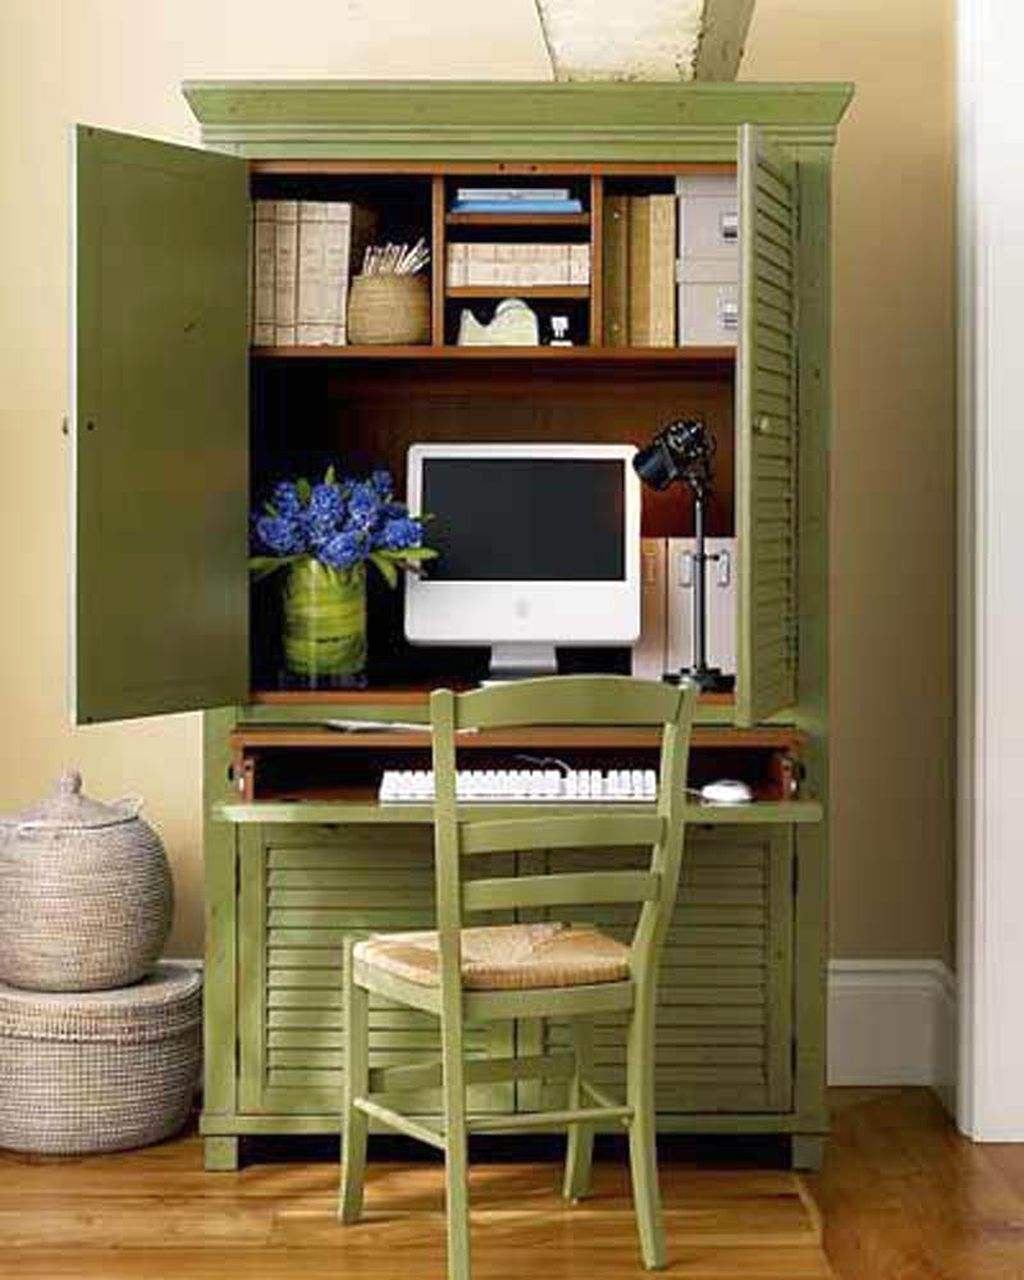 Green cupboard home office design ideas for small spaces for Small office ideas design